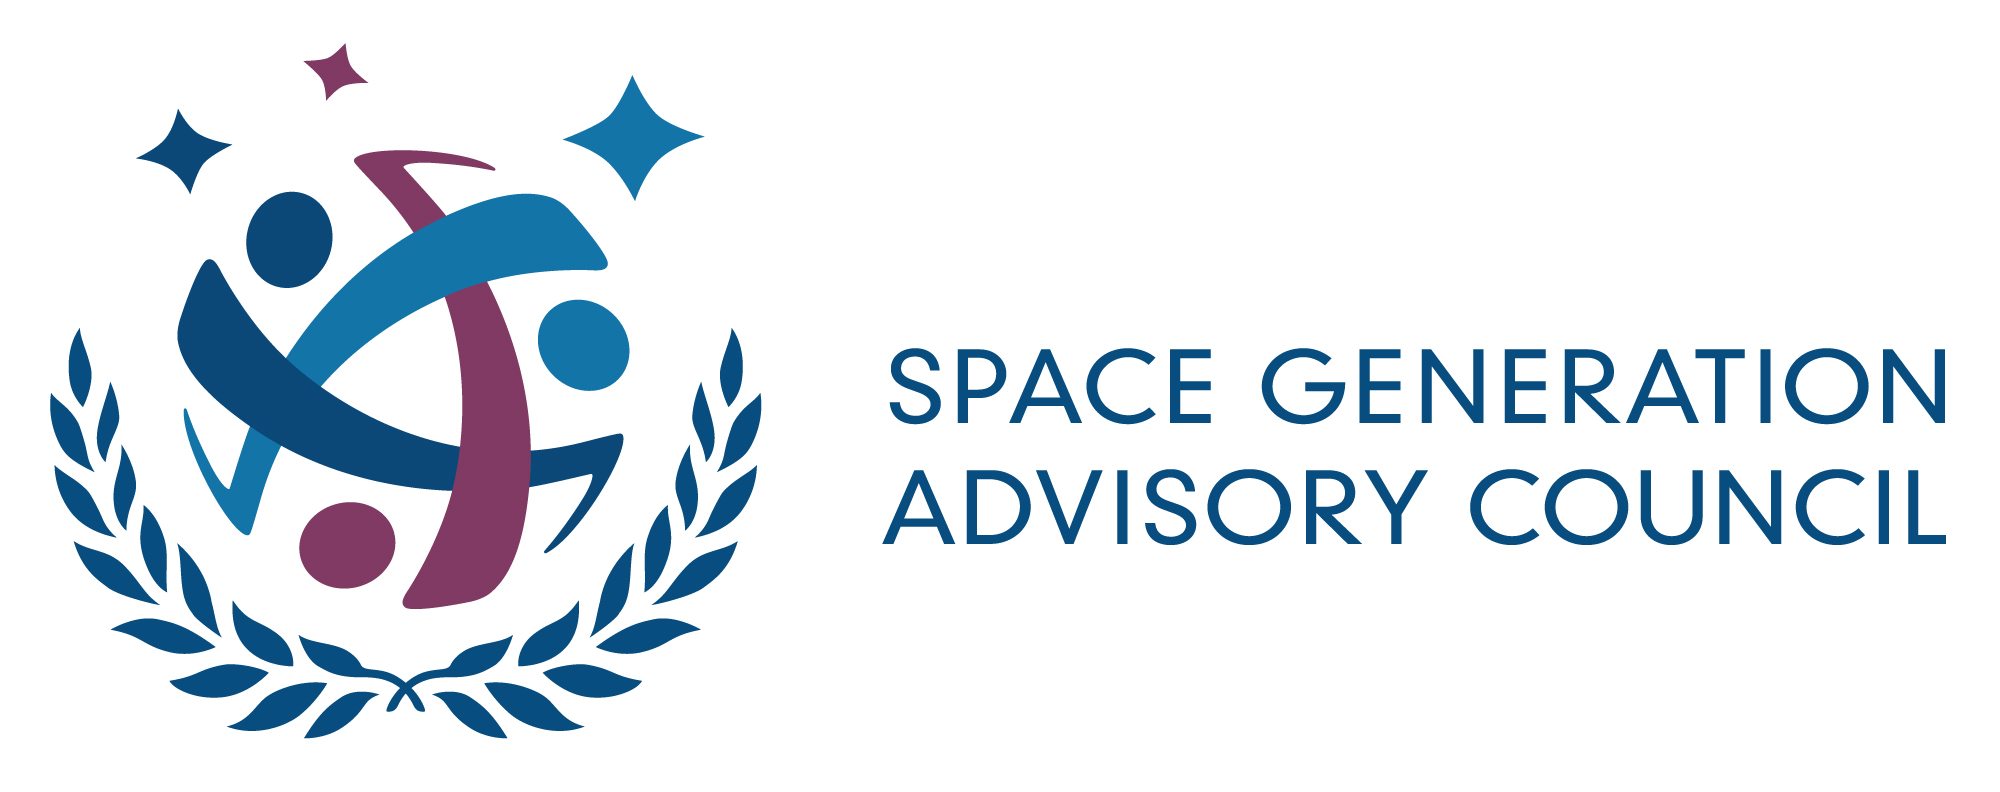 Space Generation Advisory Council